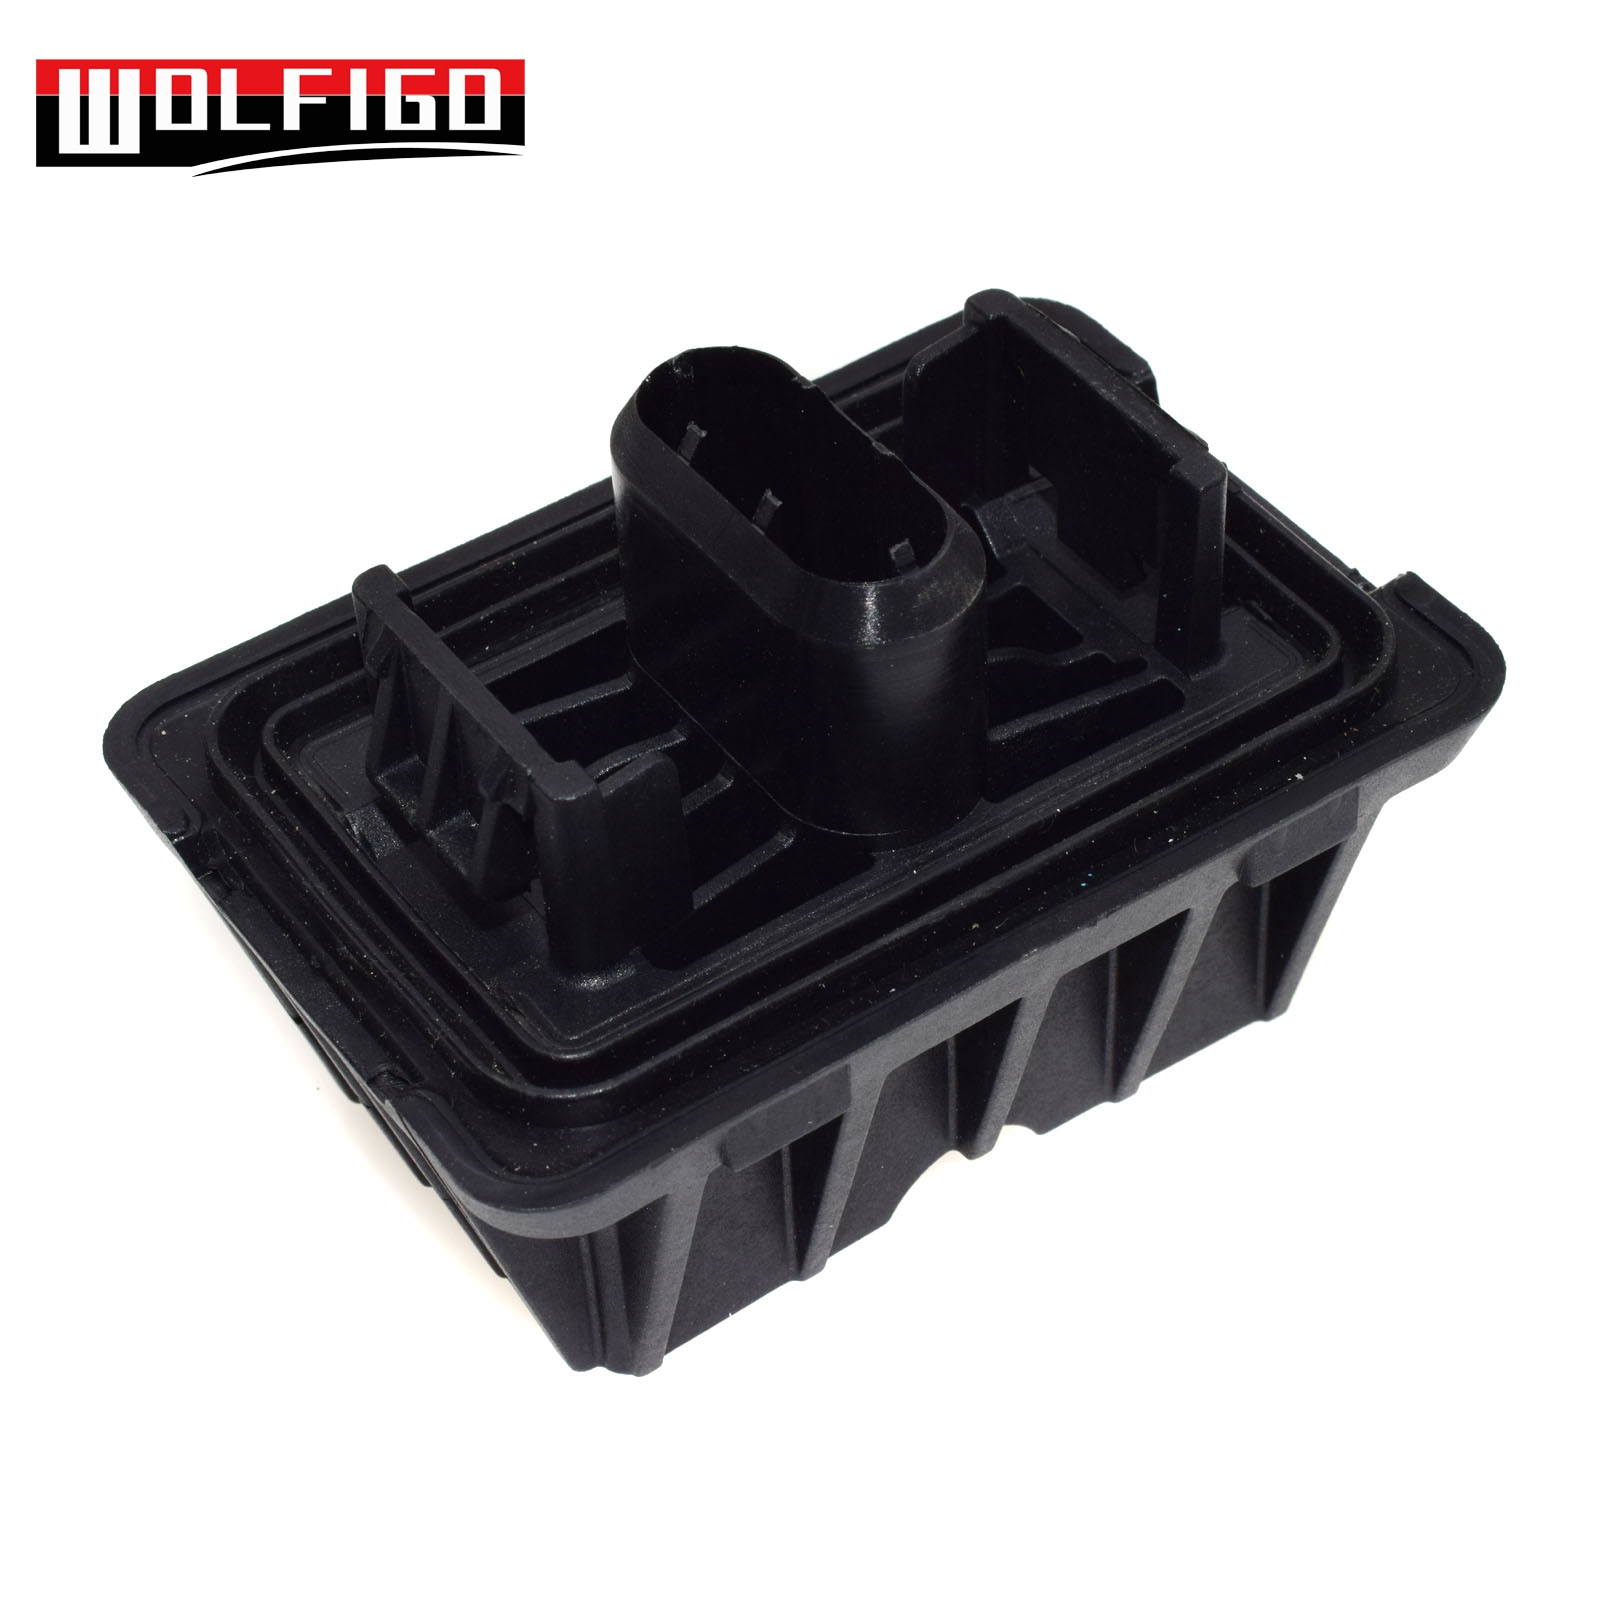 WOLFIGO Lift Support Jack Pad Under Car For BMW E92 328i 335i Coupe 51717164761  V201945 New|Chassis Components| |  - title=